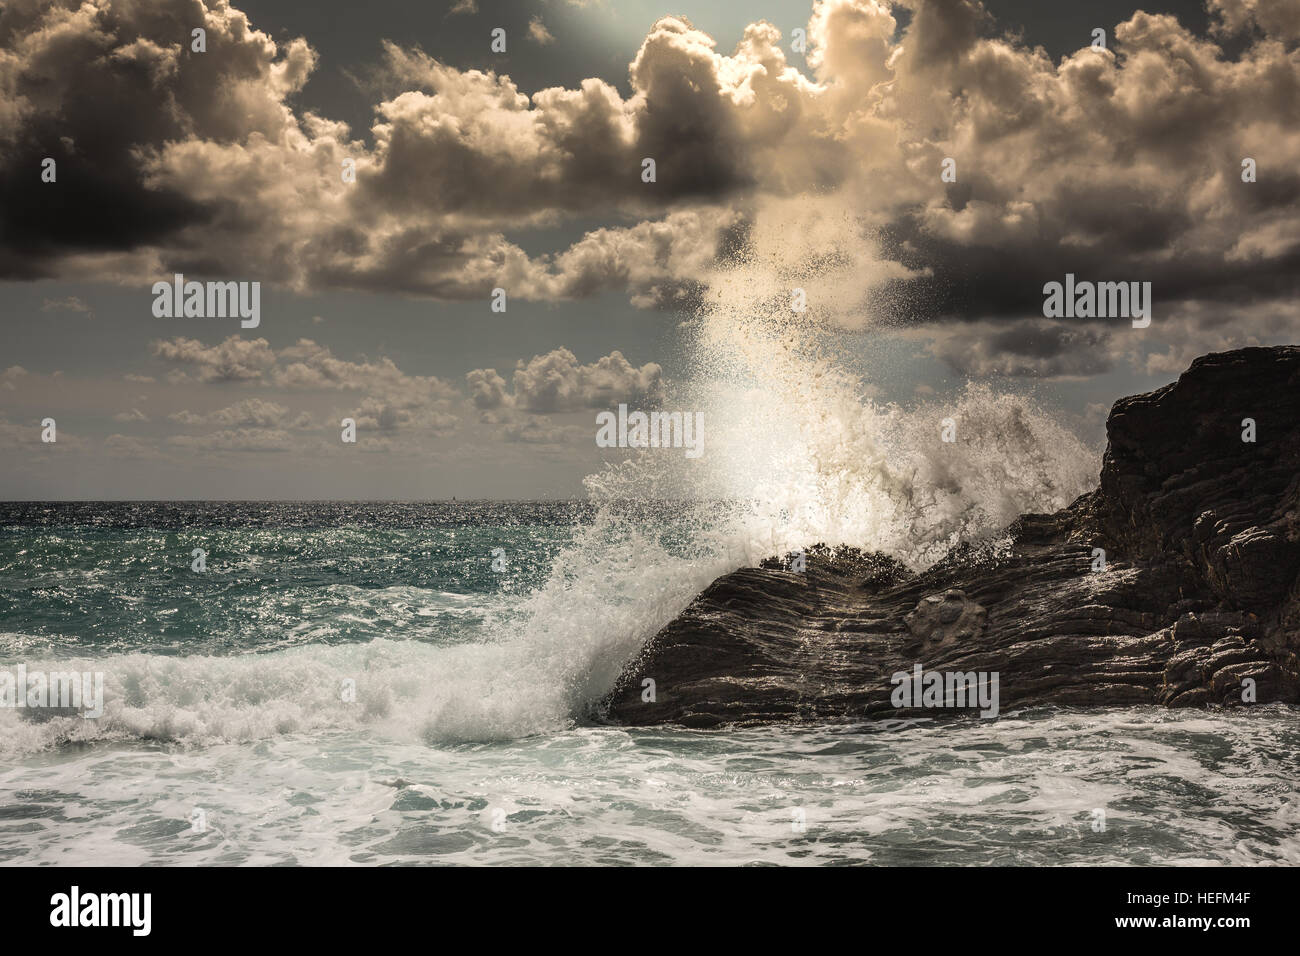 Crashing waves in Cinque Terre,Vernazza, Italy - Stock Image